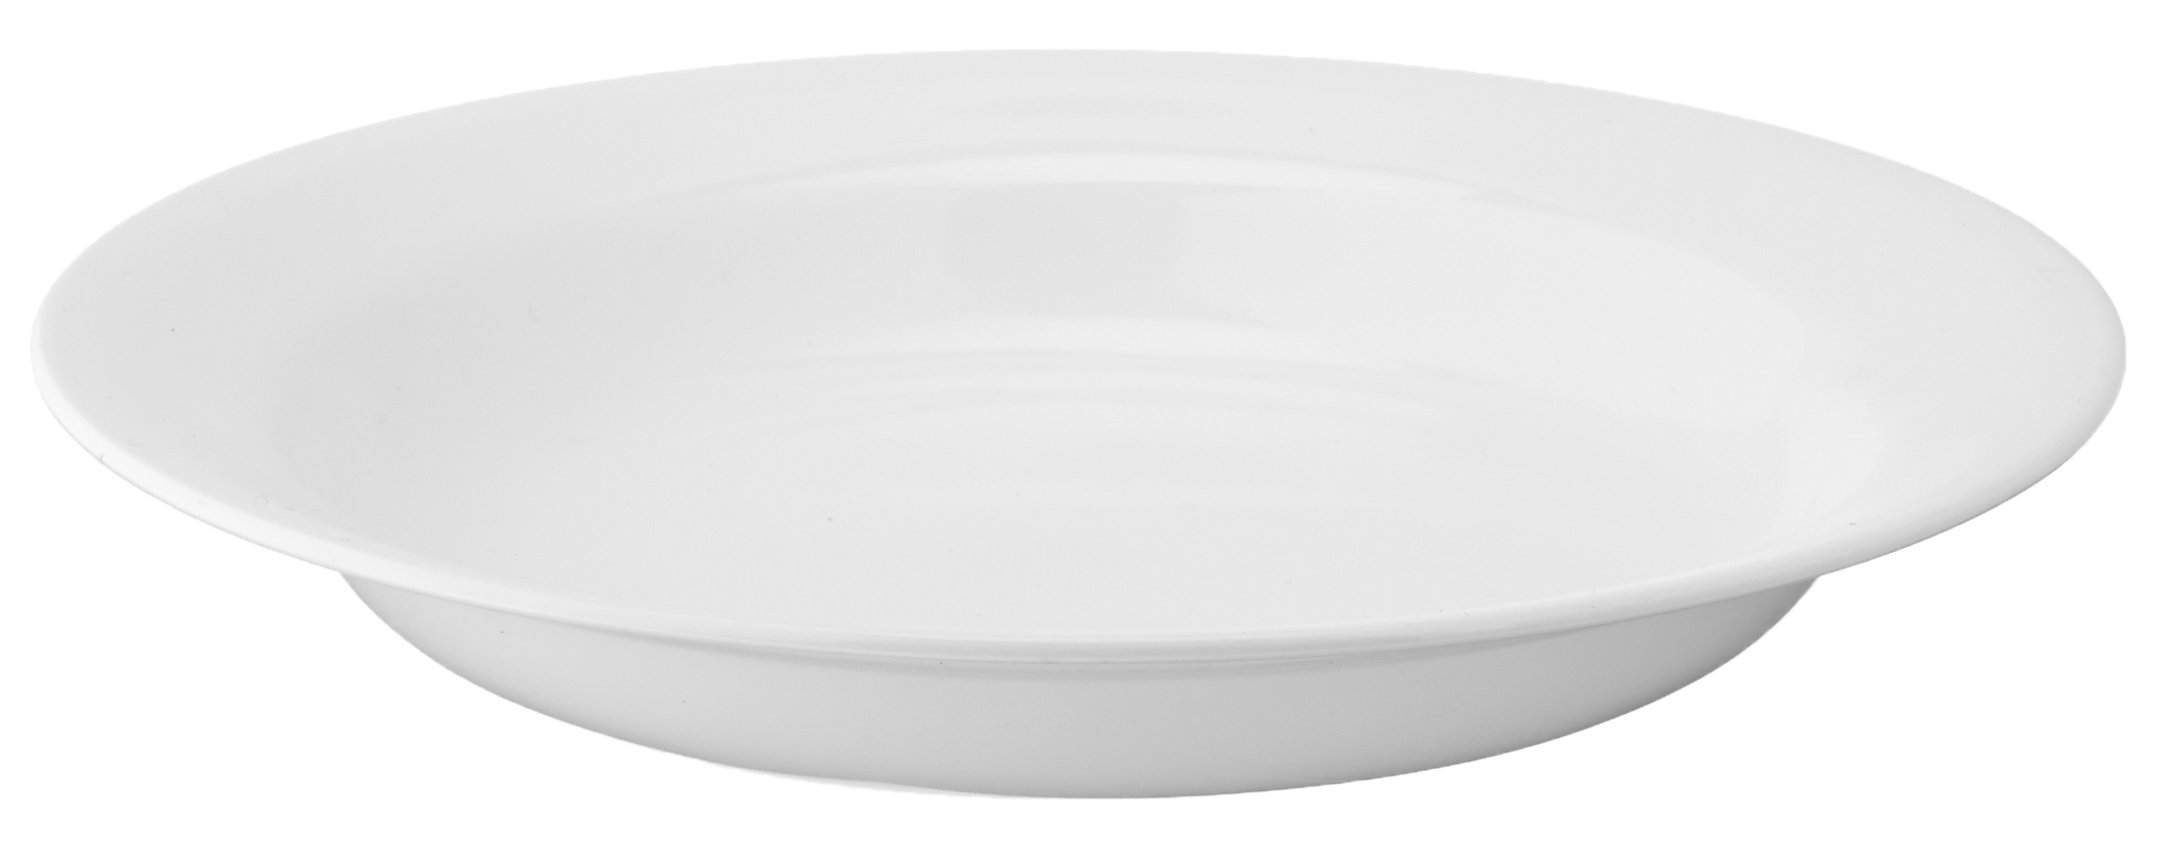 World Kitchen Corelle Livingware 15-Ounce Soup/Salad bowl, Winter Frost White (Pack of 6)